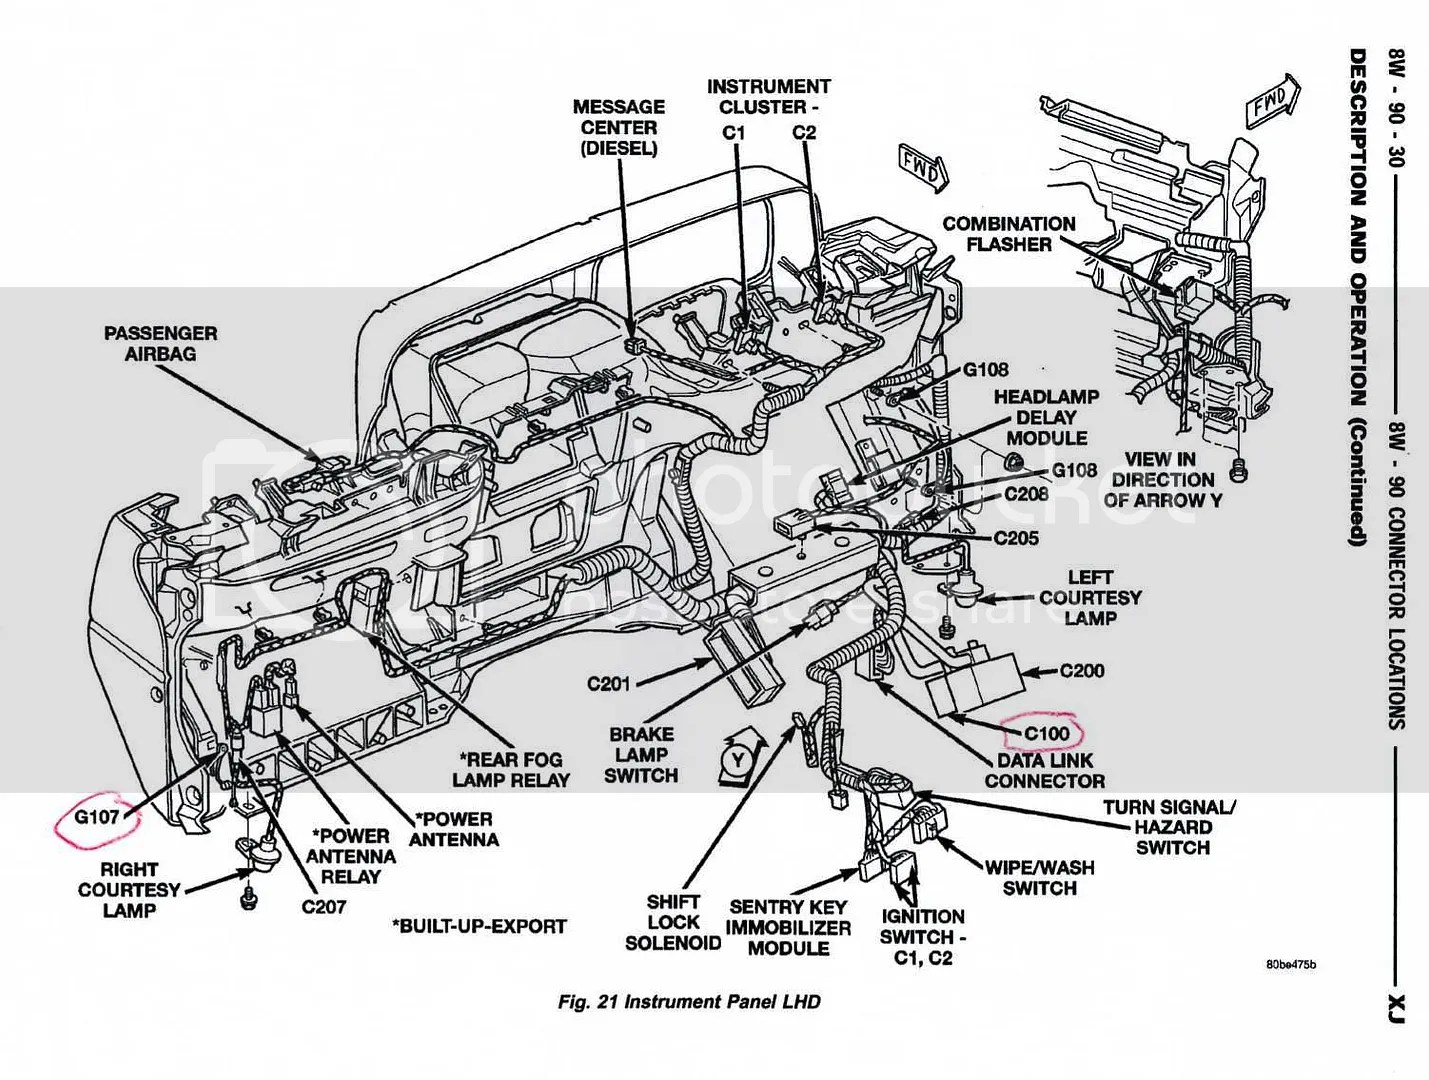 Jeep Wrangler Dash Diagram